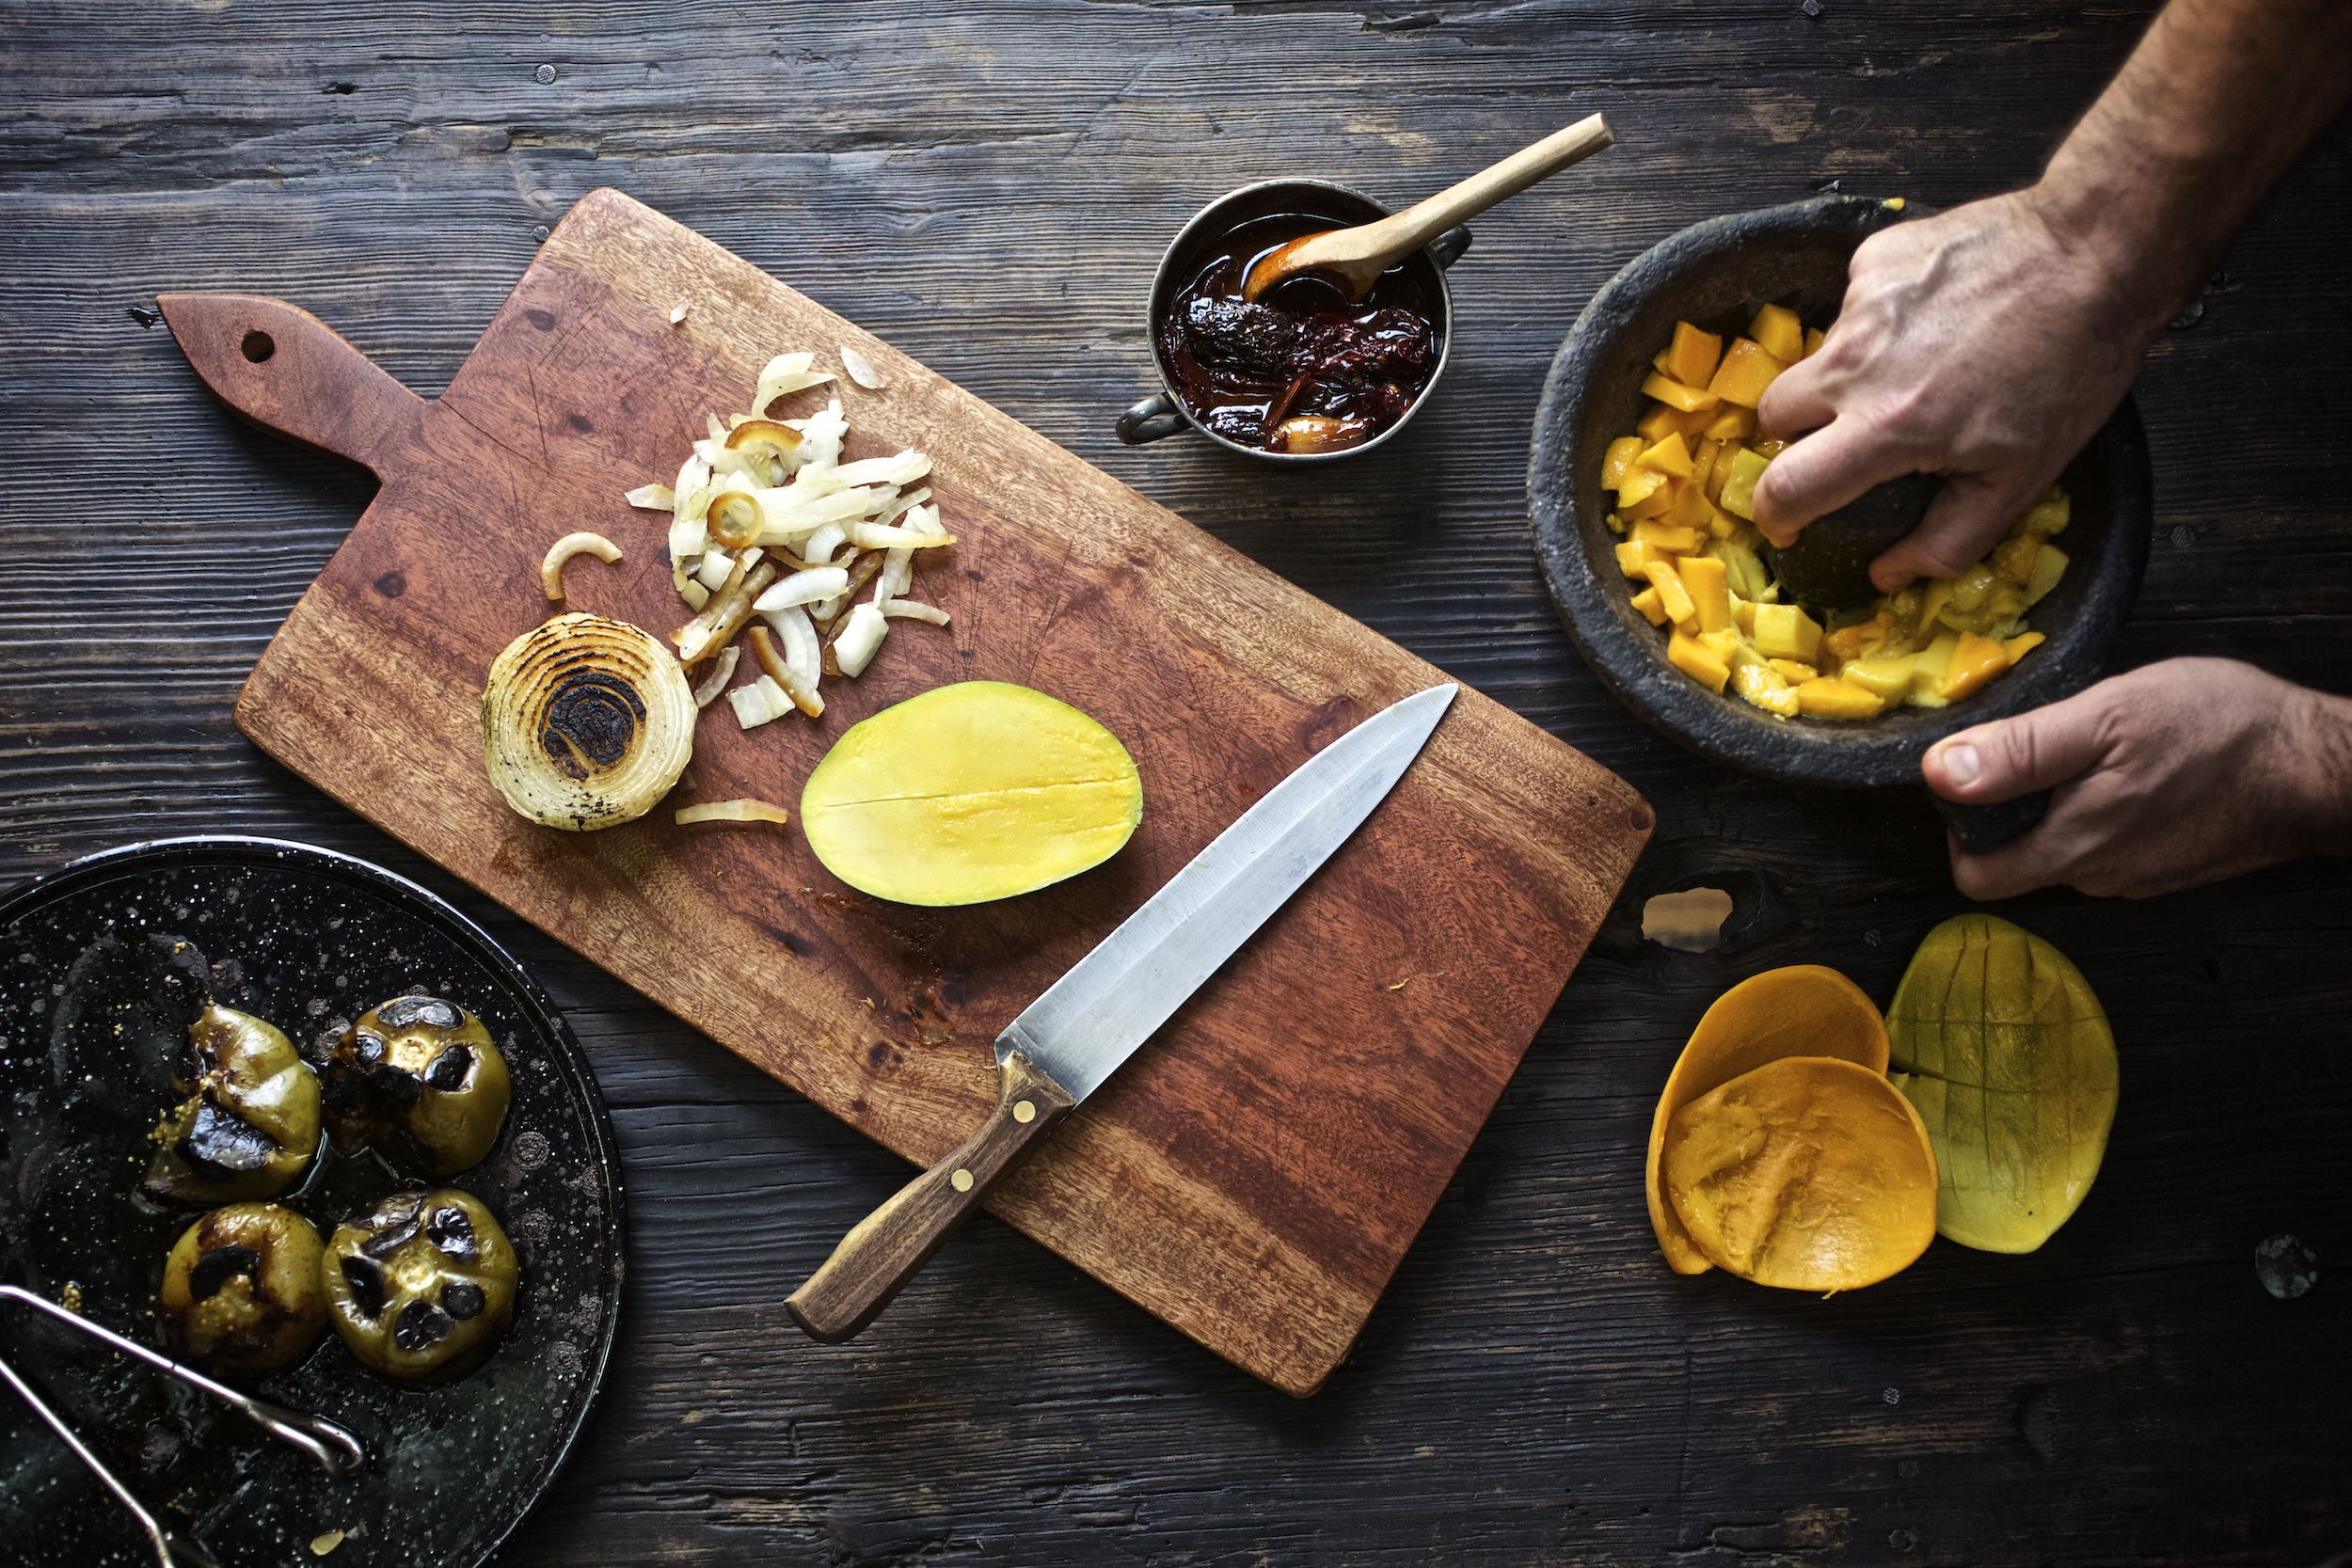 Jody Horton Photography - Chef hands preparing ingredients on a wood cutting board.